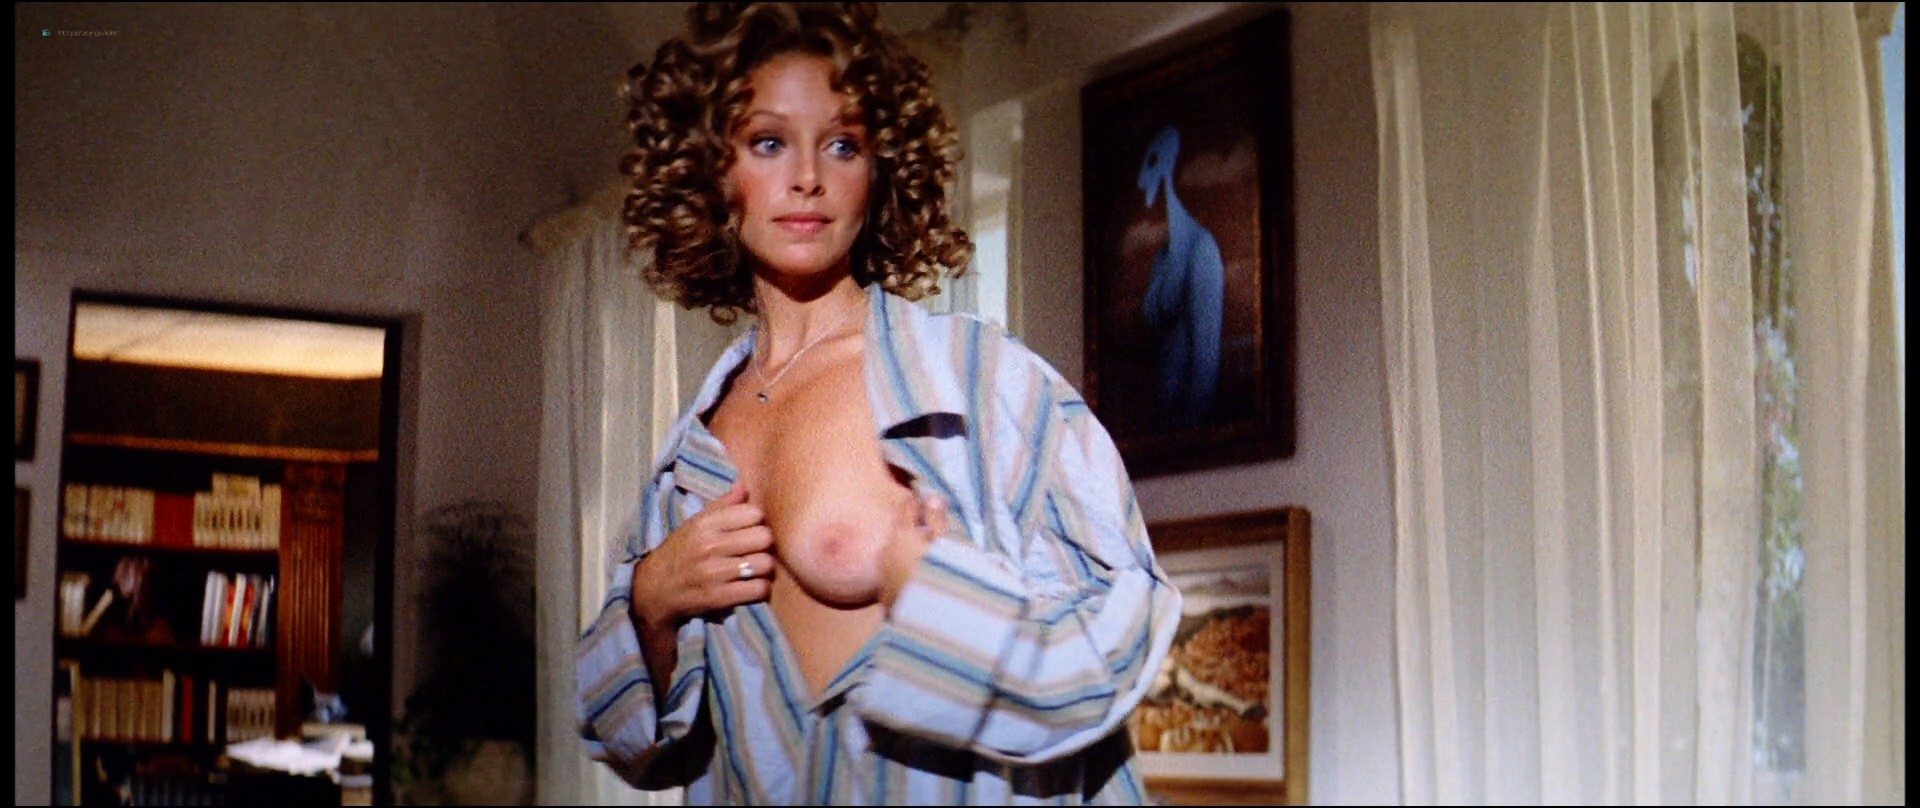 Sydne Rome nude full frontal Renate Langer, Birgitta Nilsson nude too - What? (IT-1972) 1080p BluRay (6)